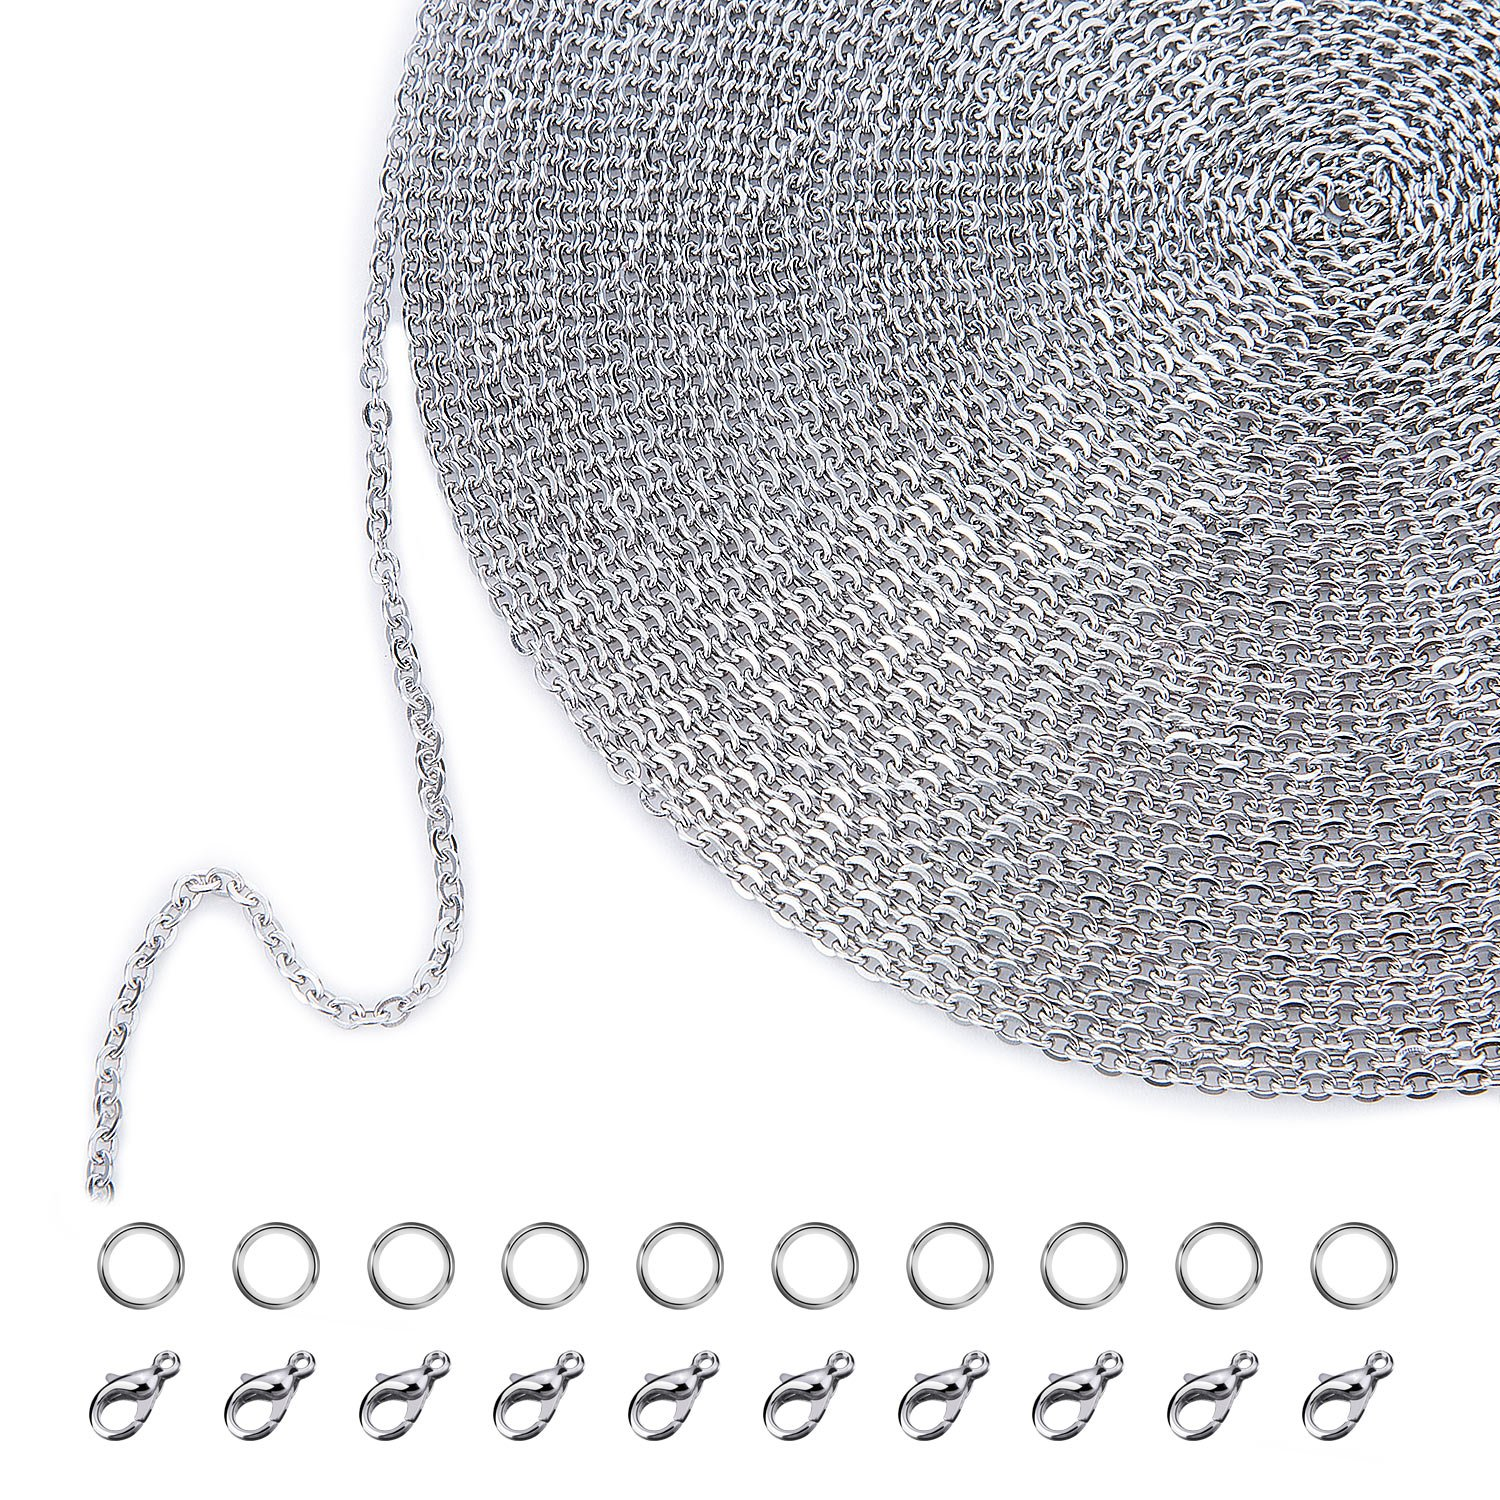 Outus 33 Feet Stainless Steel DIY Link Chain Necklaces with 20 Lobster Clasps and 30 Jump Rings for Jewelry Making 2.5 mm